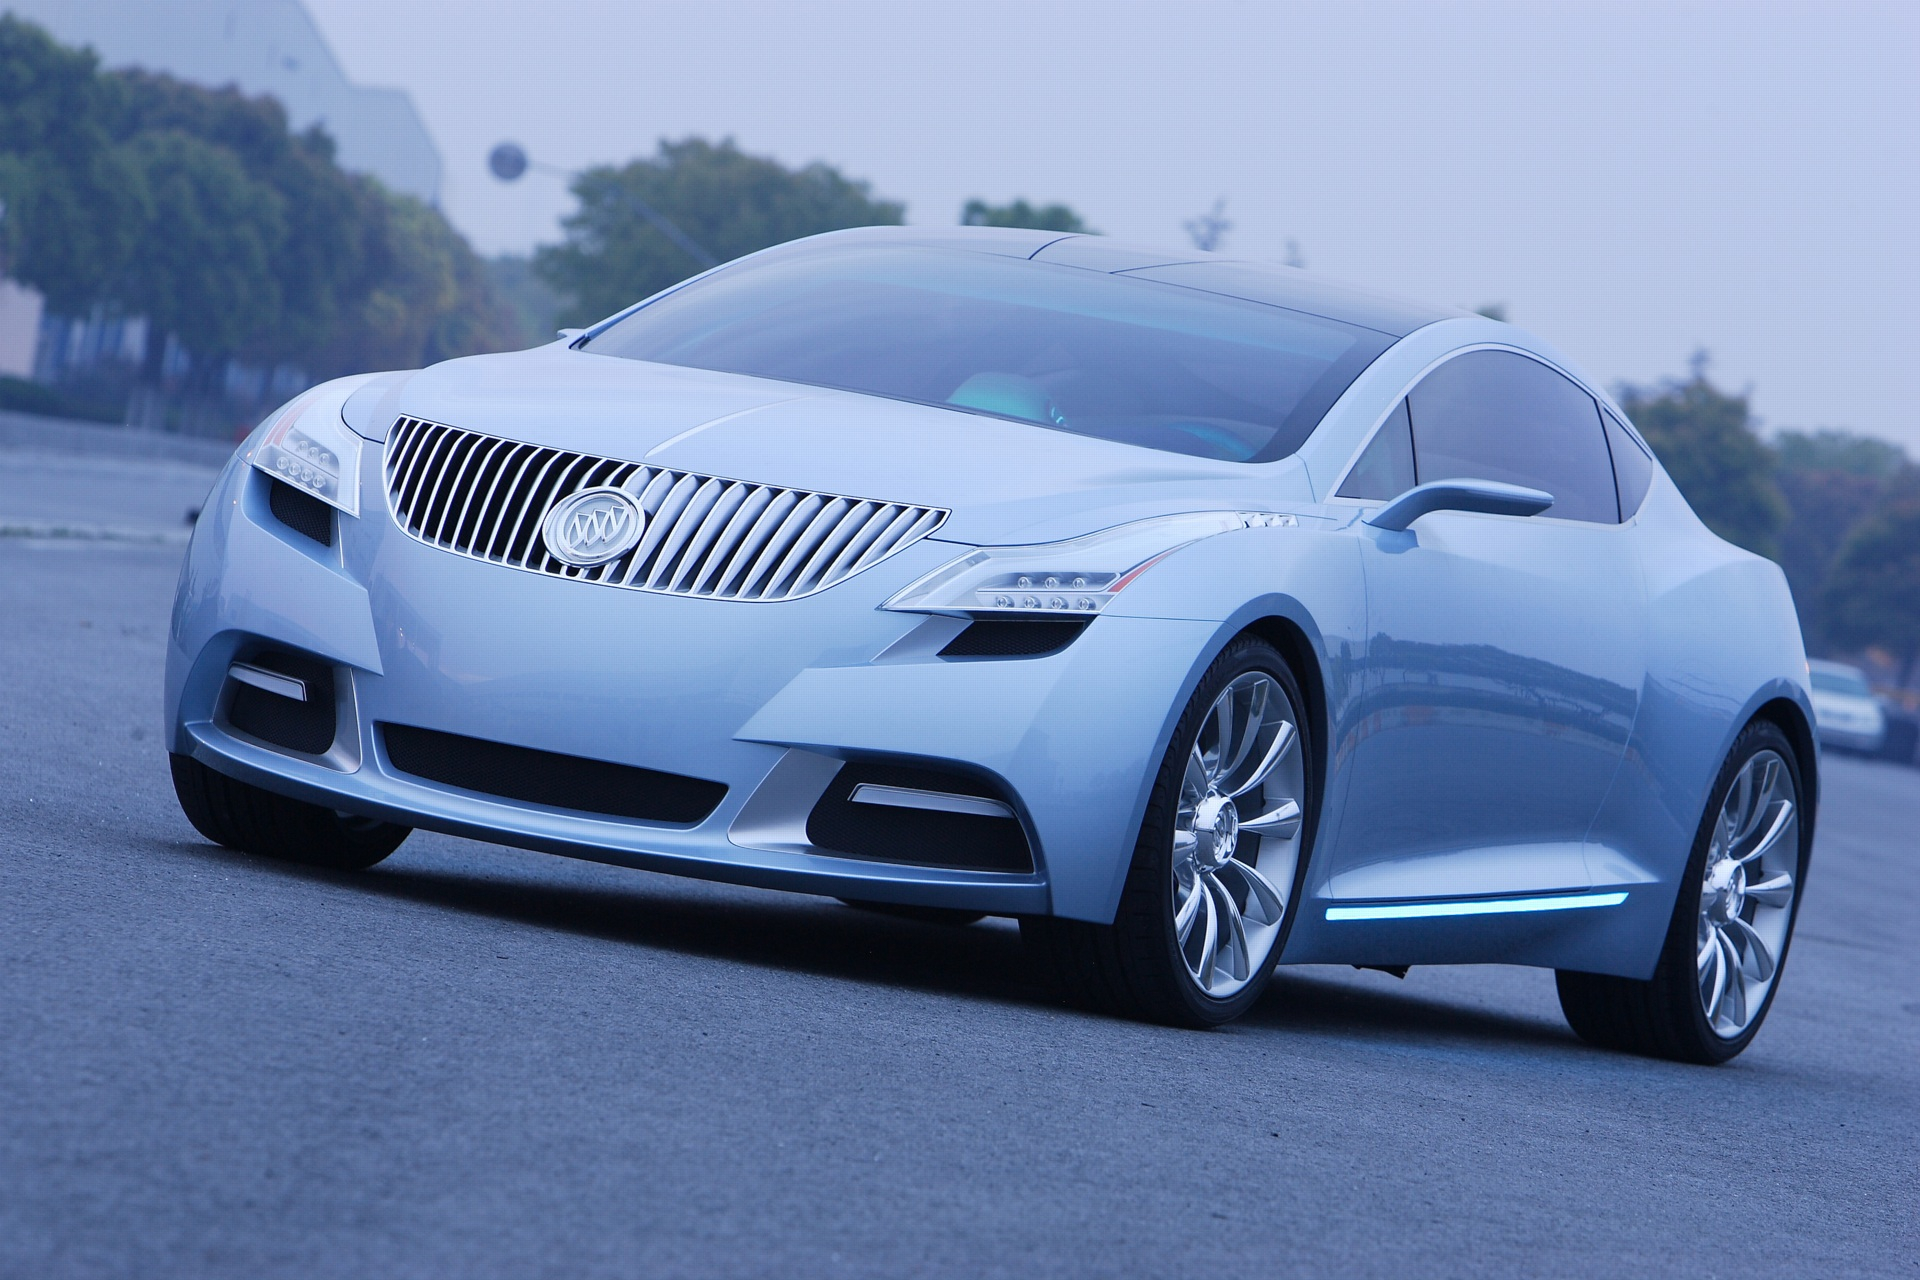 2007 Buick Riviera Concept Coupe | Conceptcarz New 2021 Buick Riviera Images, Body Parts, Concept